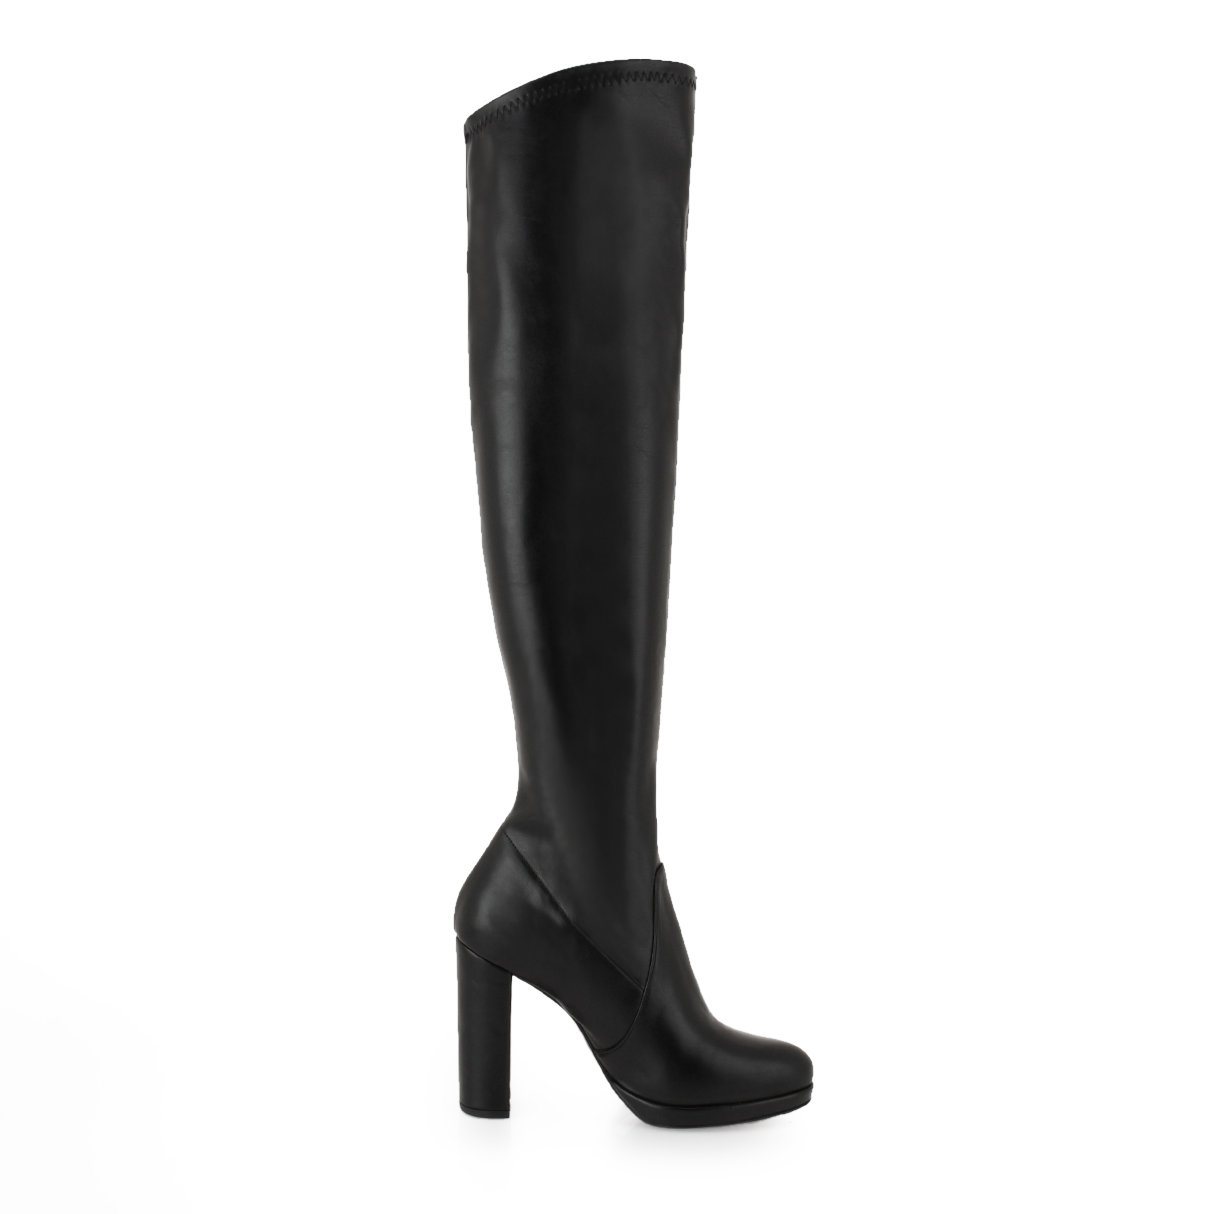 OVER THE KNEE BOOTS σχέδιο: J21009764